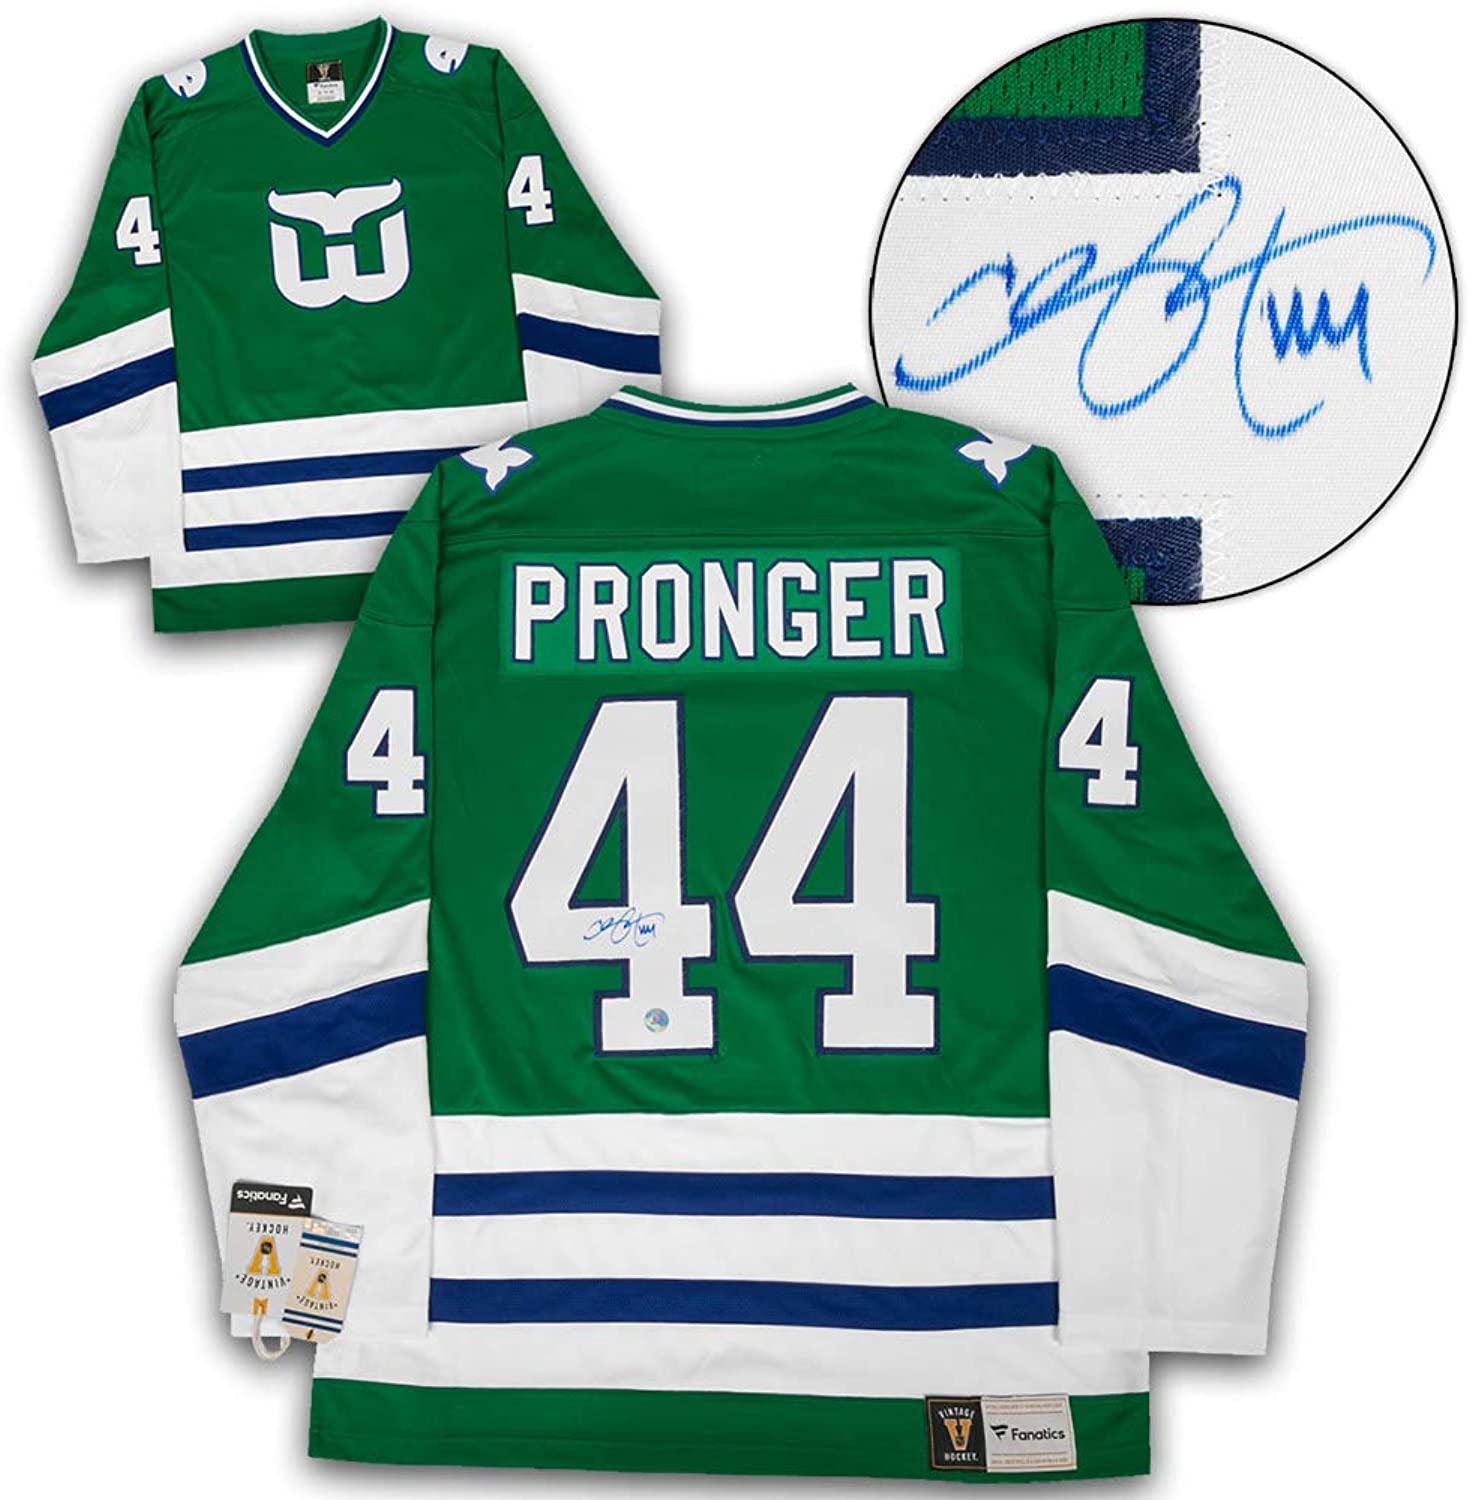 Chris Pronger Hartford Whalers Autographed Fanatics Vintage Hockey Jersey